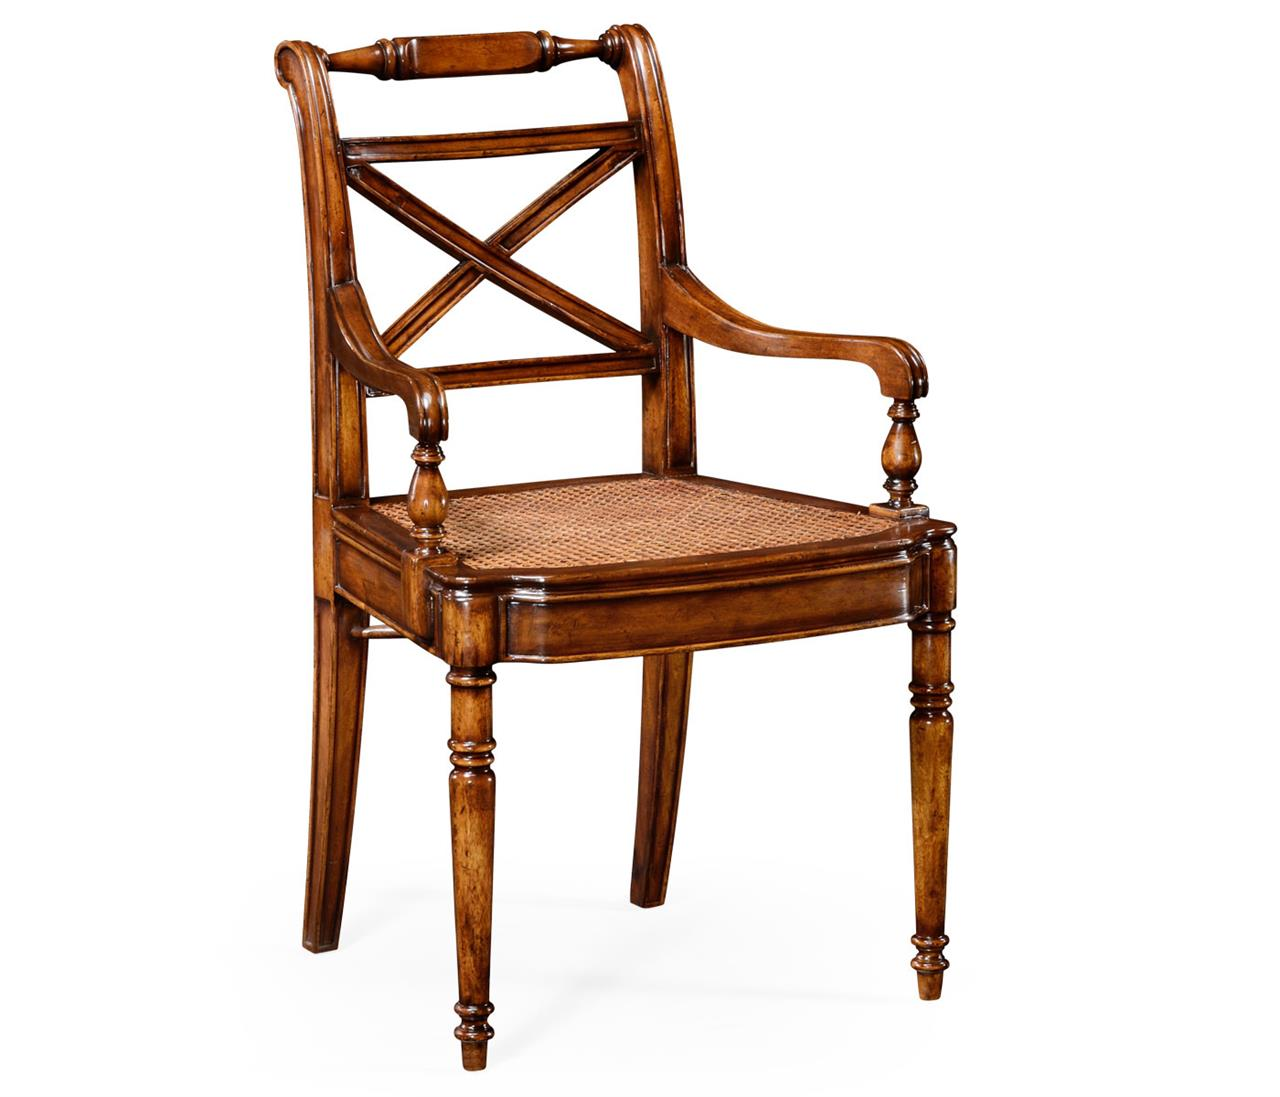 Solid Walnut Antique Reproduction Cane Seat Dining Chair